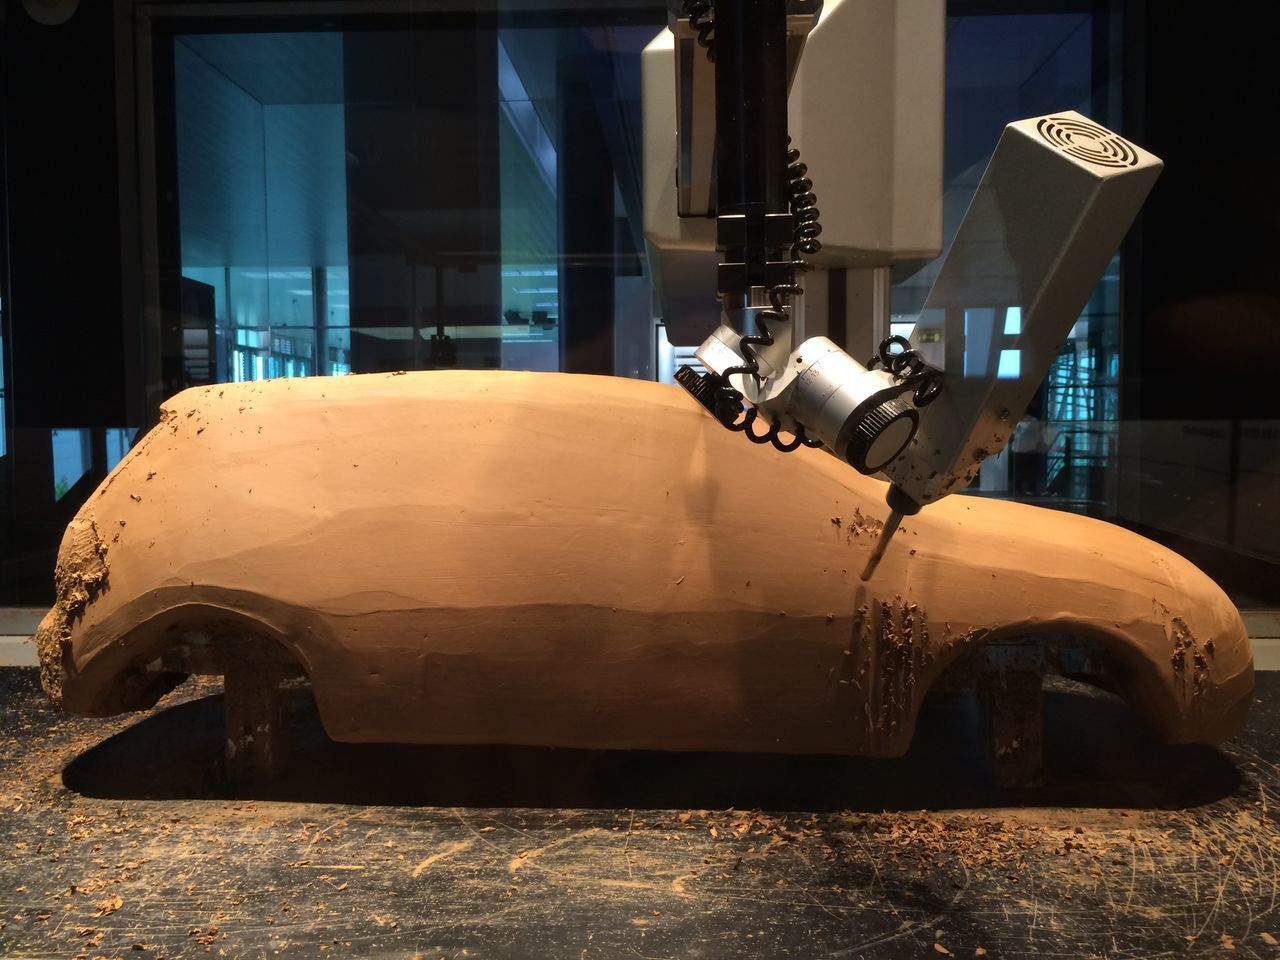 Car Clay model Car Design Envision The Future Future Getting Inspired How Do We Build The World? Human Meets Technology Industrial Industrial Photography Machine Material No People Shapes Shapes And Forms Technology Technology Everywhere Technology I Can't Live Without The Drive Your Design Story